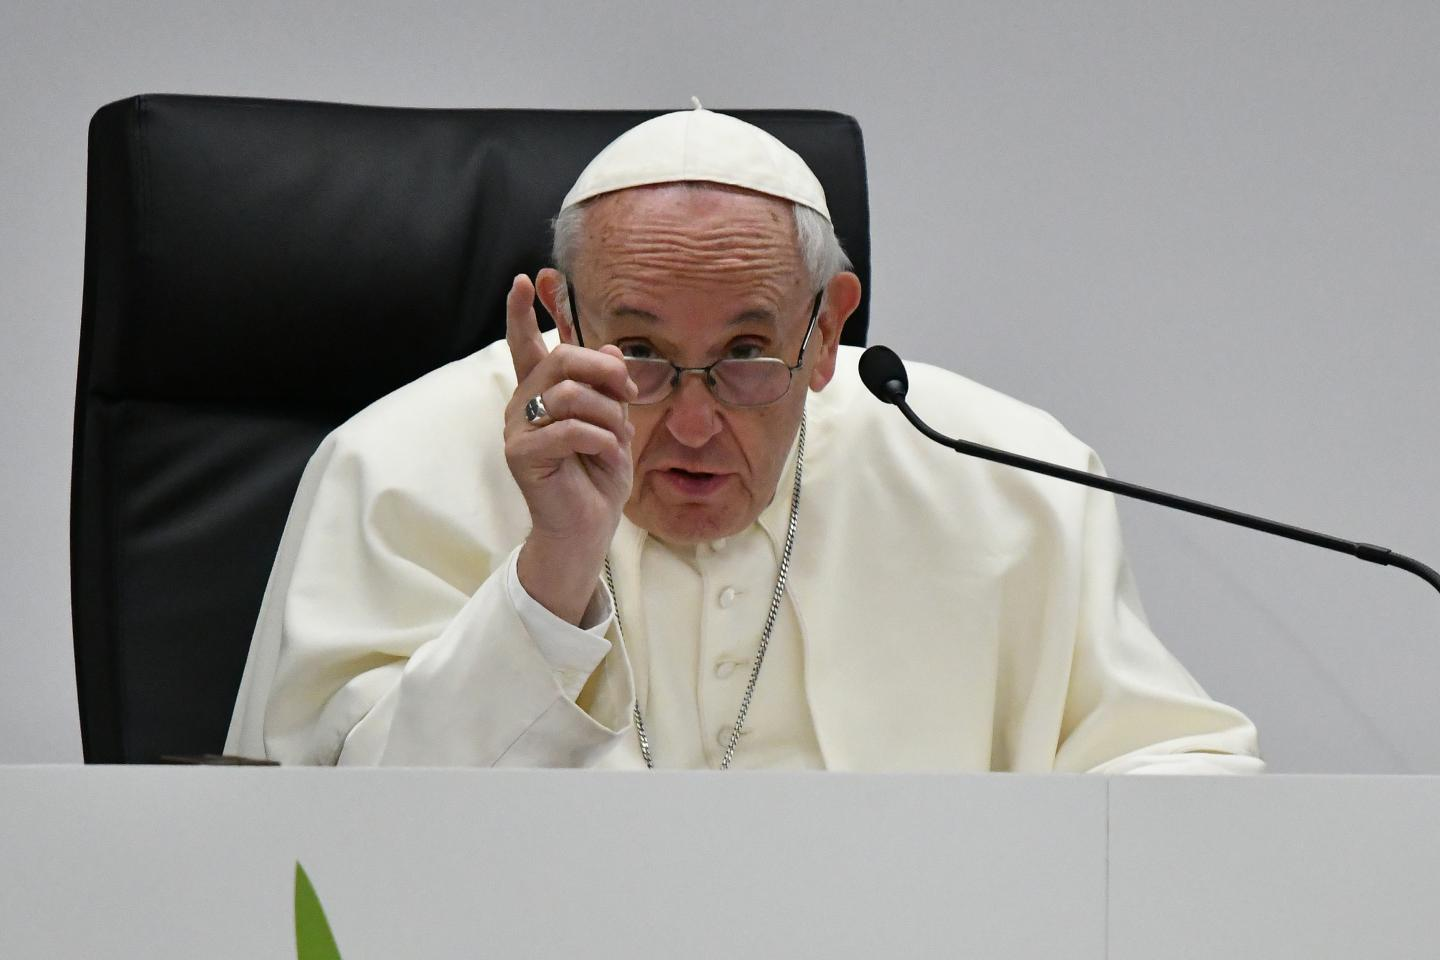 paying-for-sex-is-to-torture-a-woman-says-pope-francis